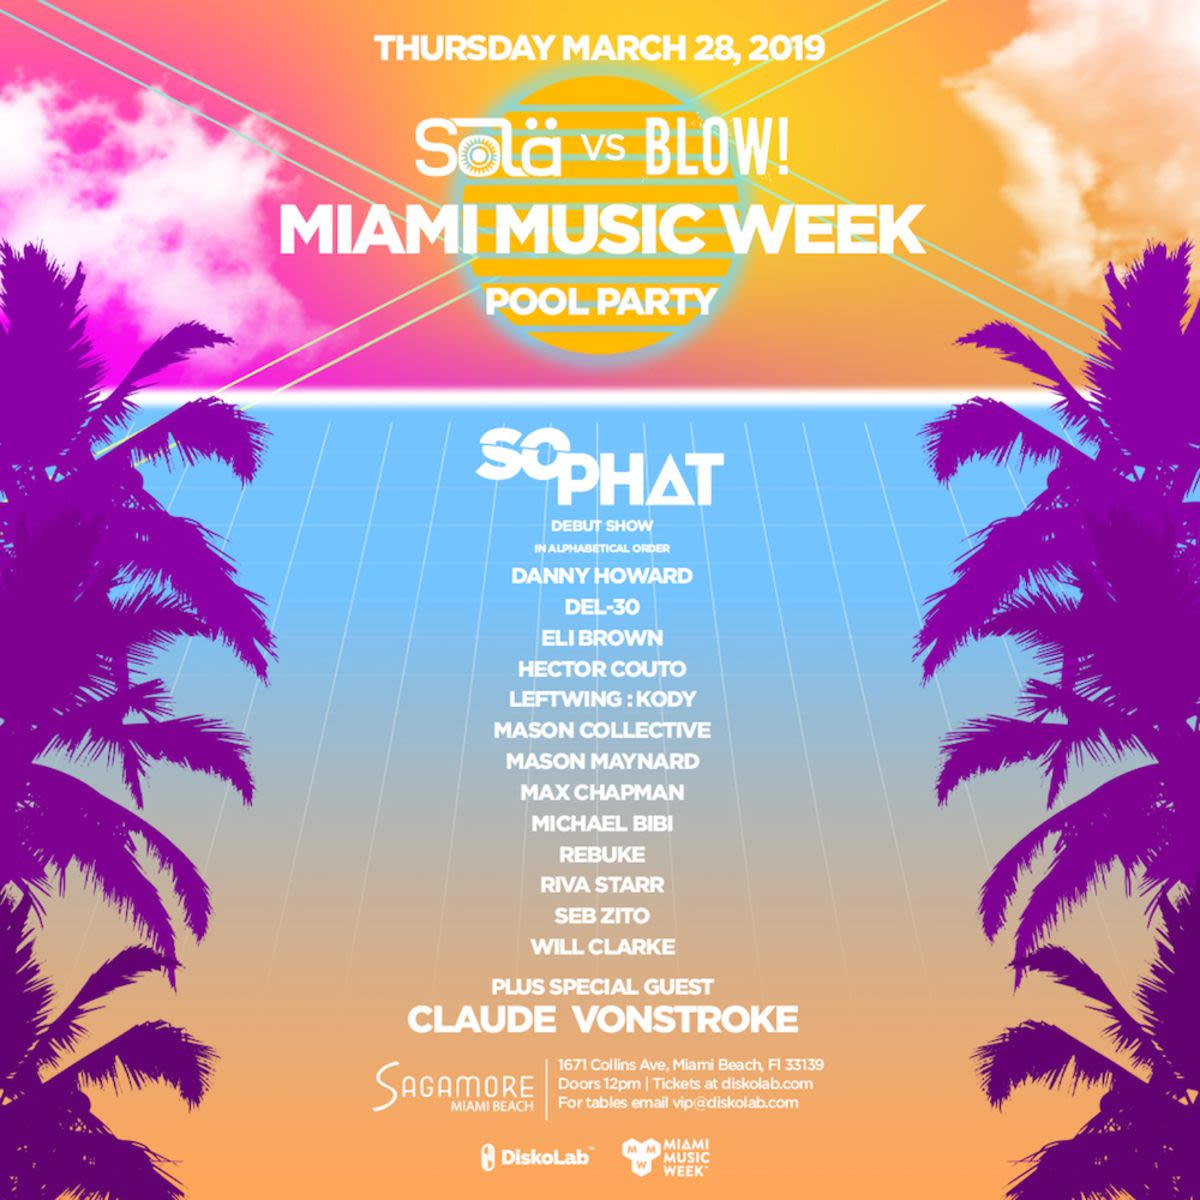 sola-vs-blow-sagamore-miami-music-event-poster